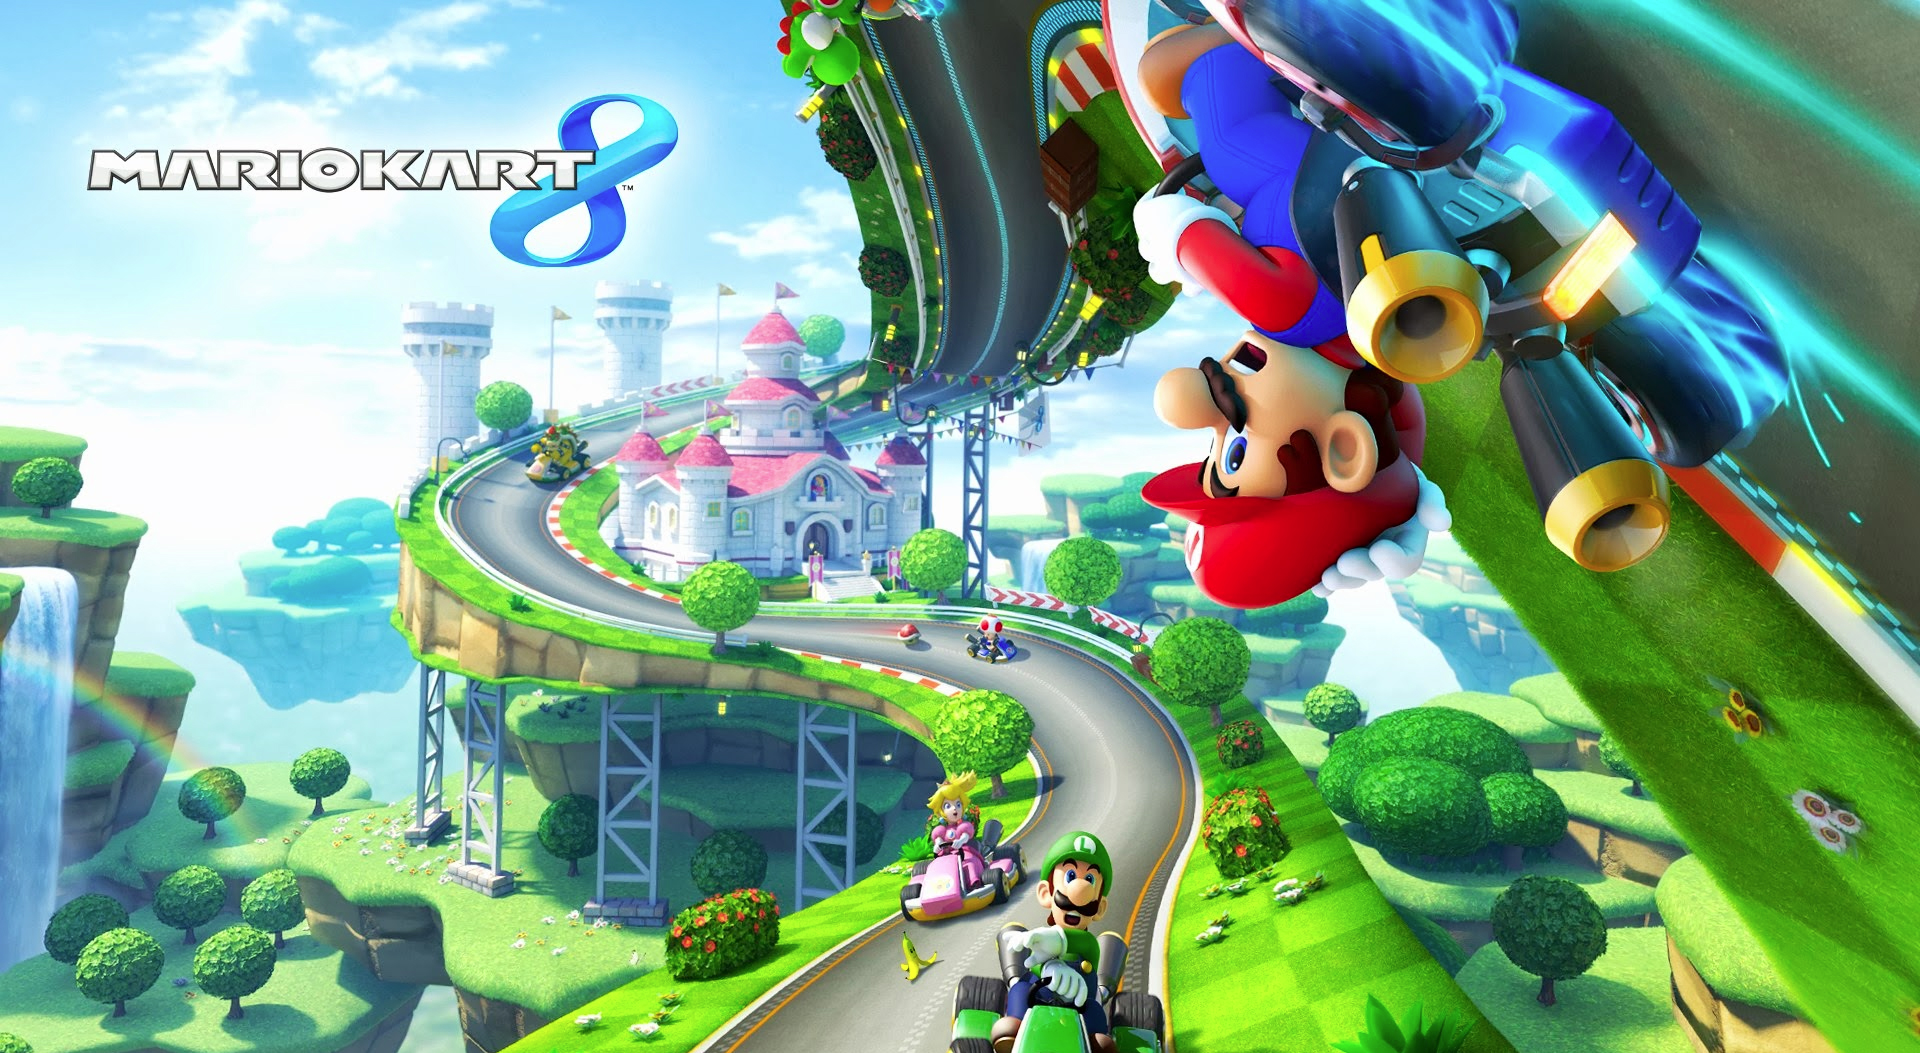 Mario kart 8 for sale - Mario Kart 8 Has Highest Software Attach Rate Than Any Other Game In The Series Nintendotoday